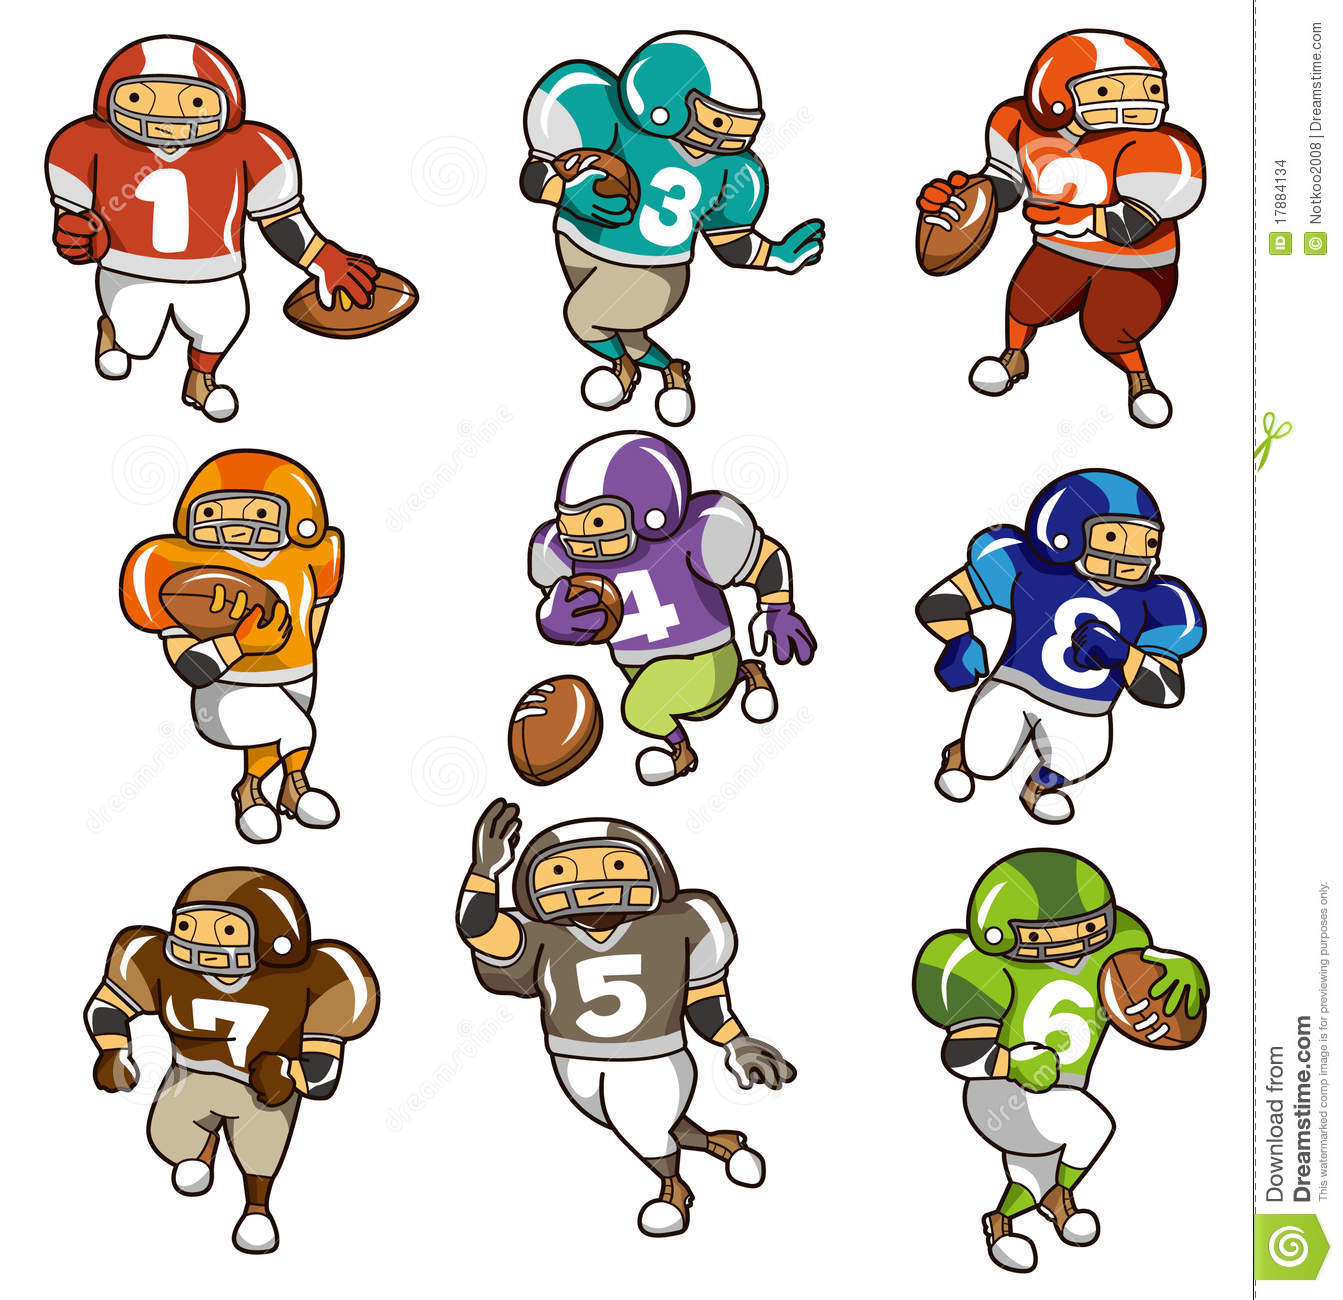 royalty free stock photo download cartoon football player